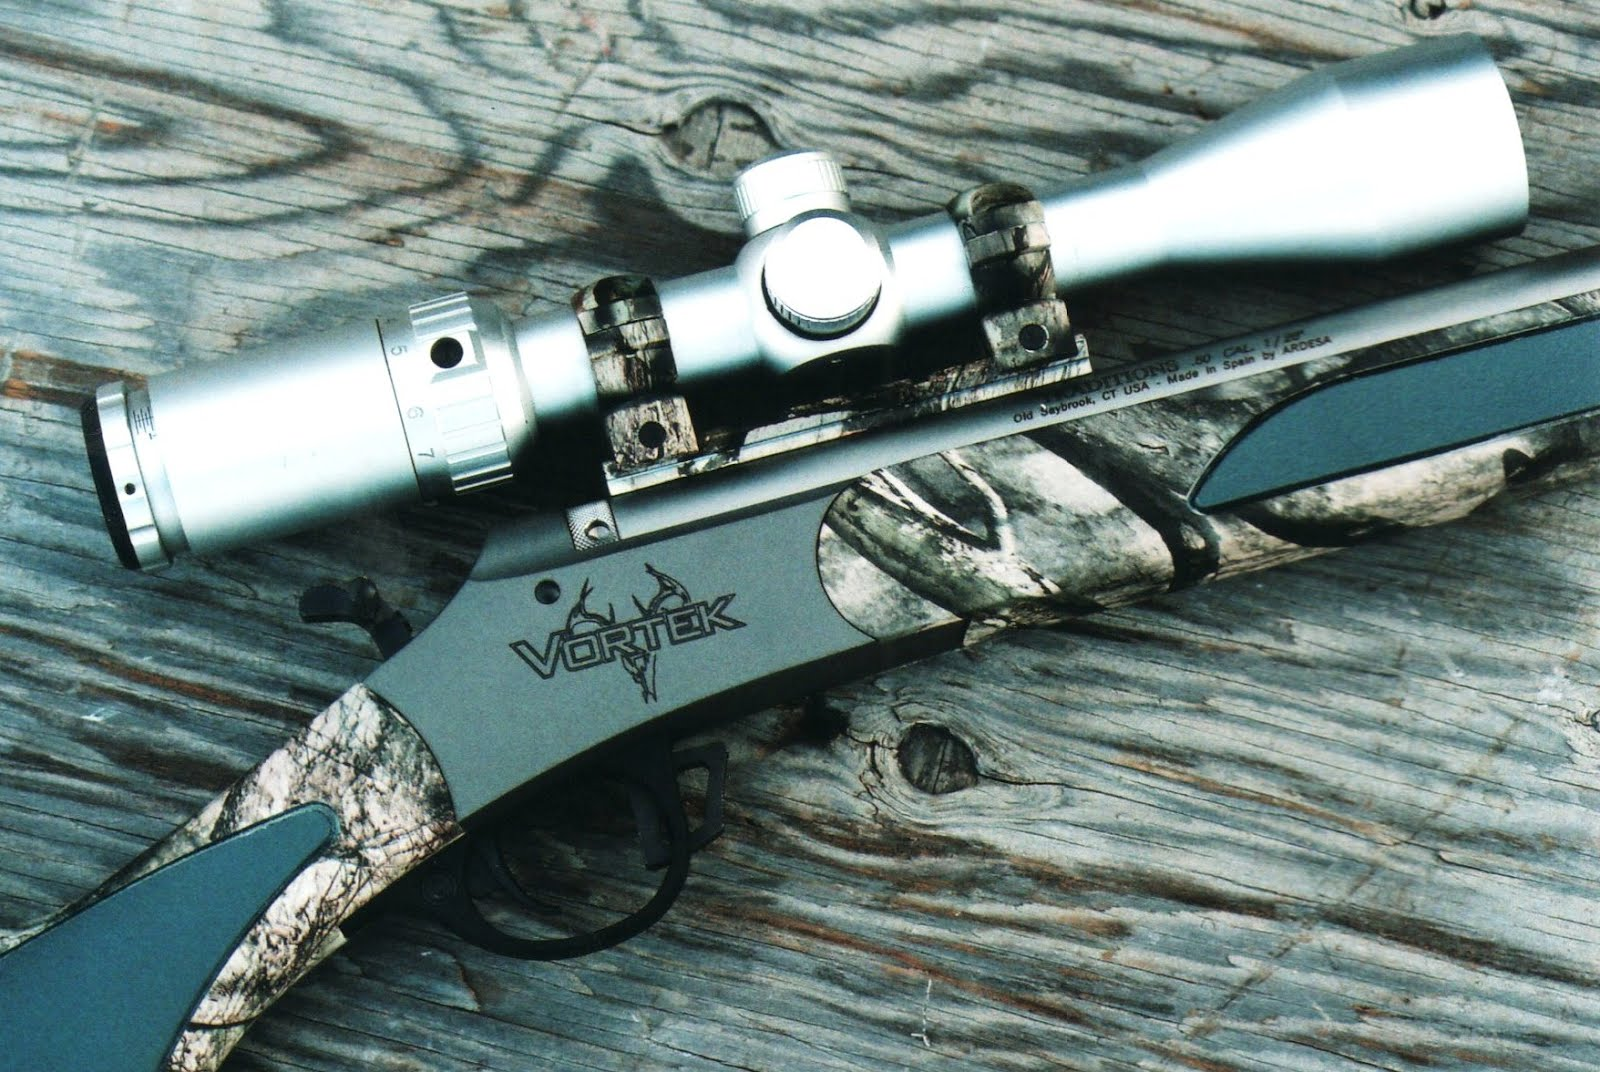 Traditions' Muzzleloader Hunting : Building This Blog In 2013!